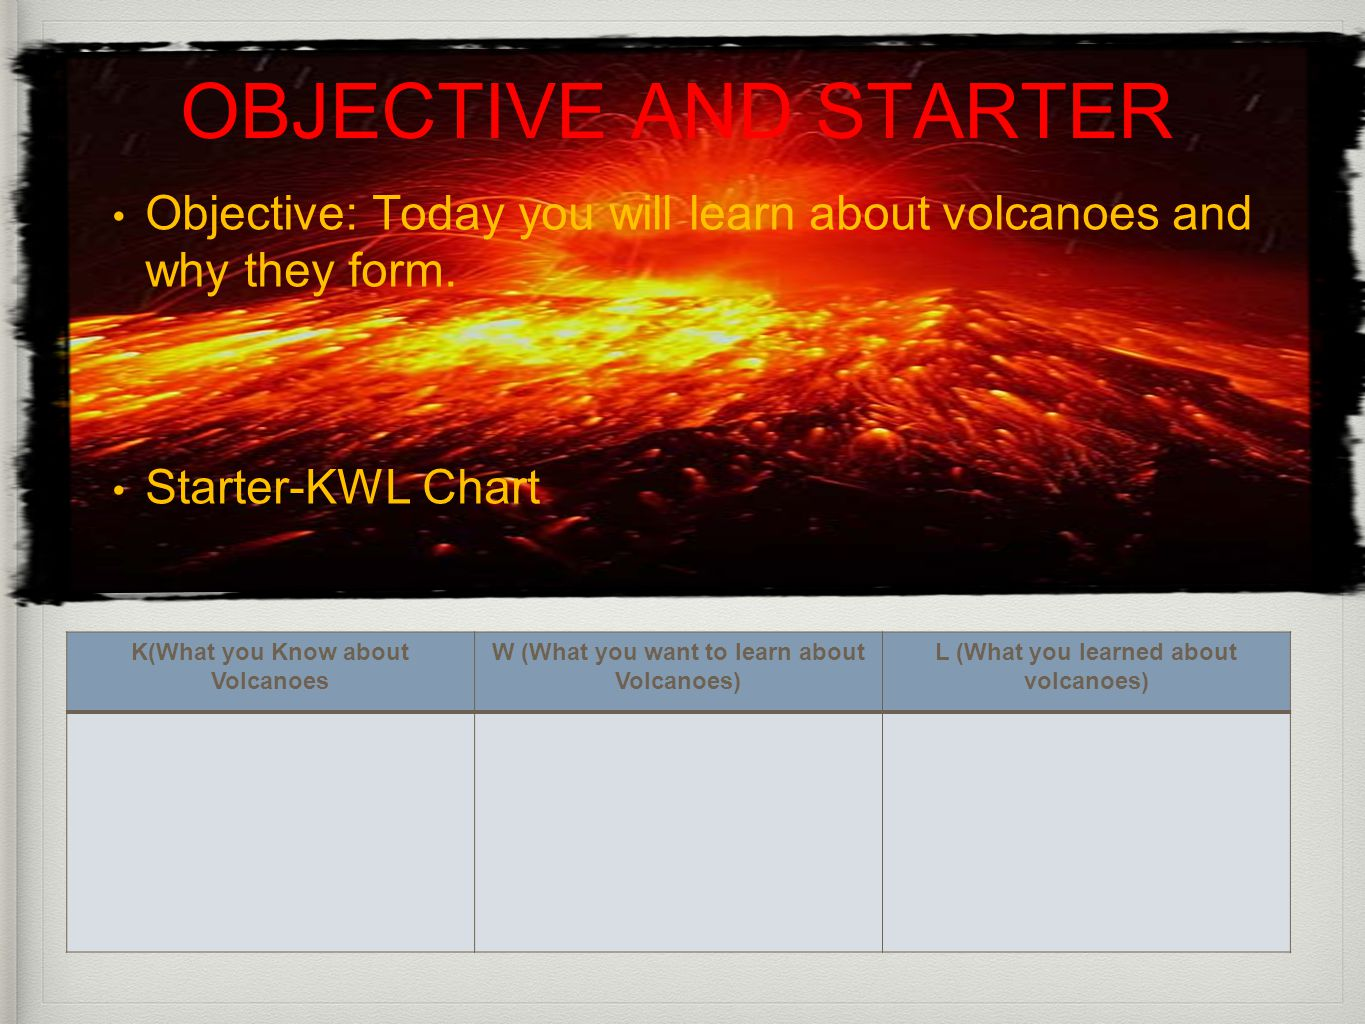 OBJECTIVE AND STARTER Objective: Today you will learn about volcanoes and why they form. Starter-KWL Chart K(What you Know about Volcanoes W (What you